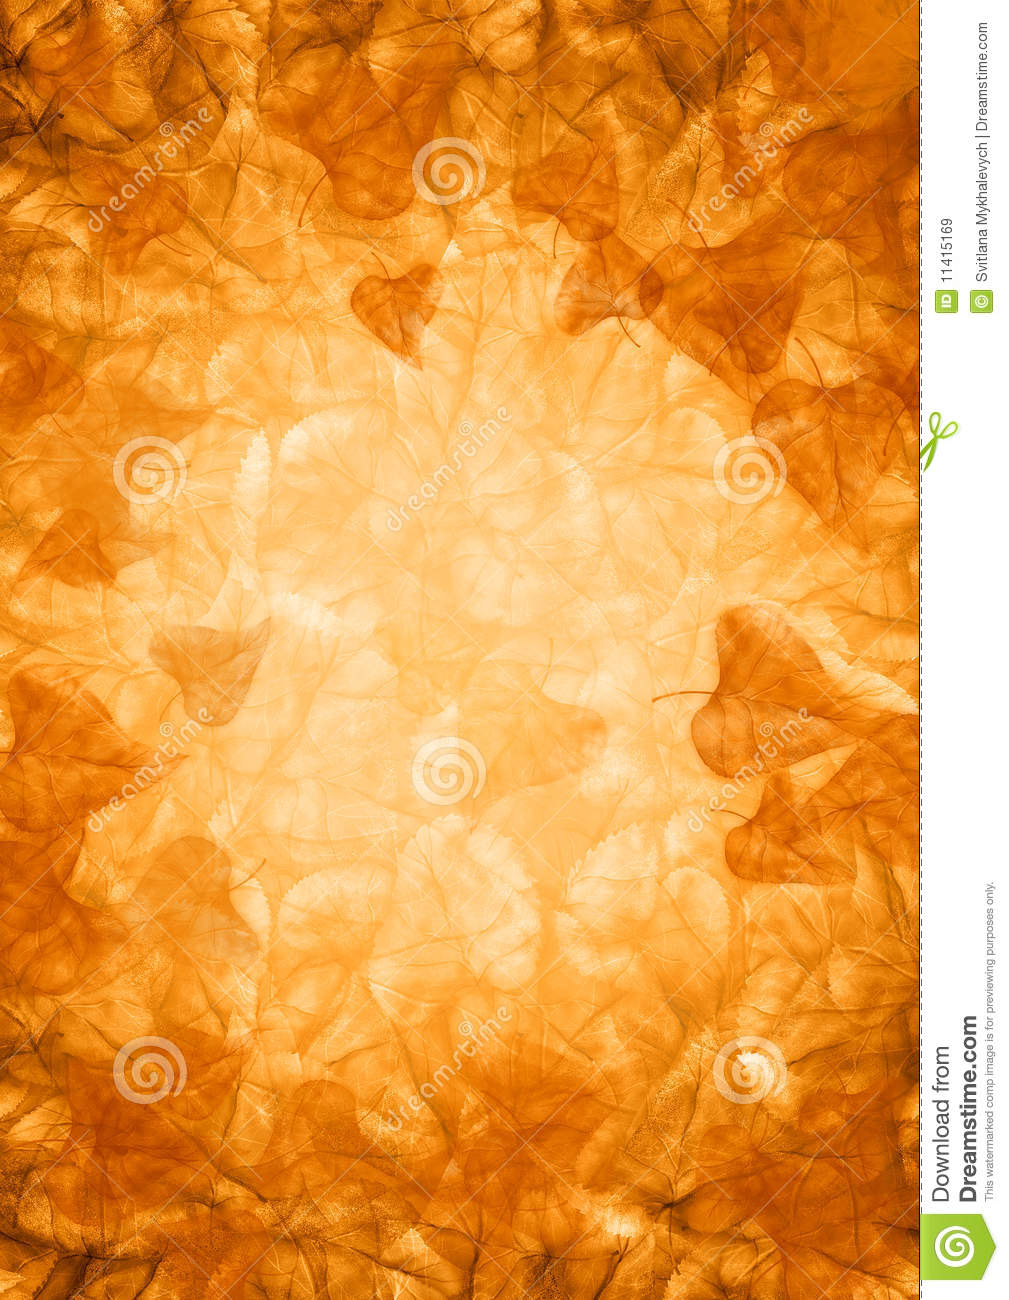 Fall Colored Background Wallpaper Gold Fall Background Royalty Free Stock Images Image